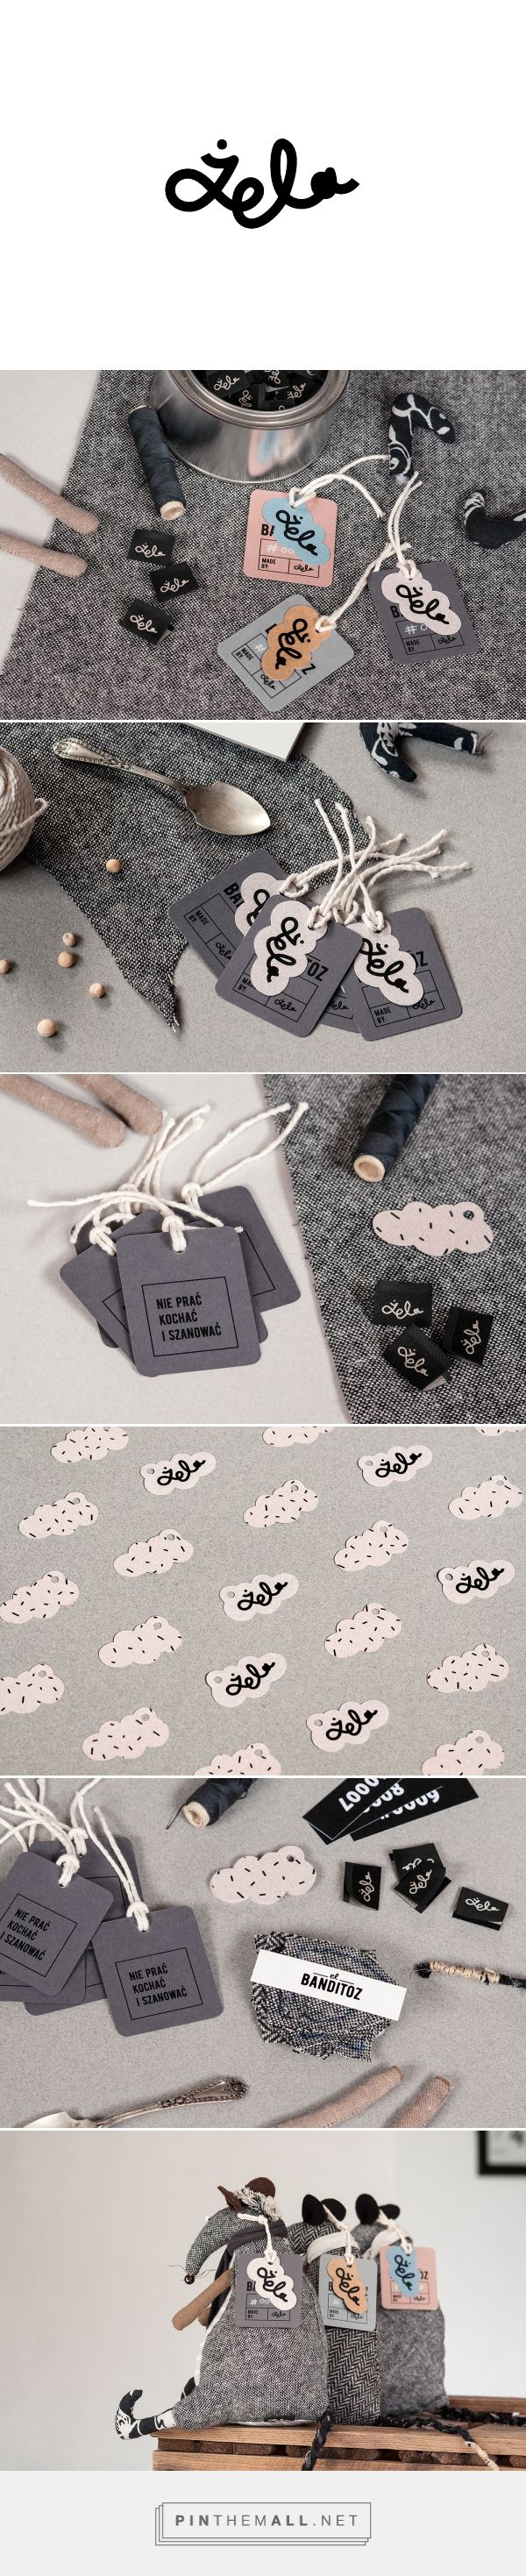 ŻELA   branding on Behance by Wel, Gdańsk, Poland curated by Packaging Diva PD.  The cutest handmade toys, tags and labels. Branding, Graphic Design, Toy Design.